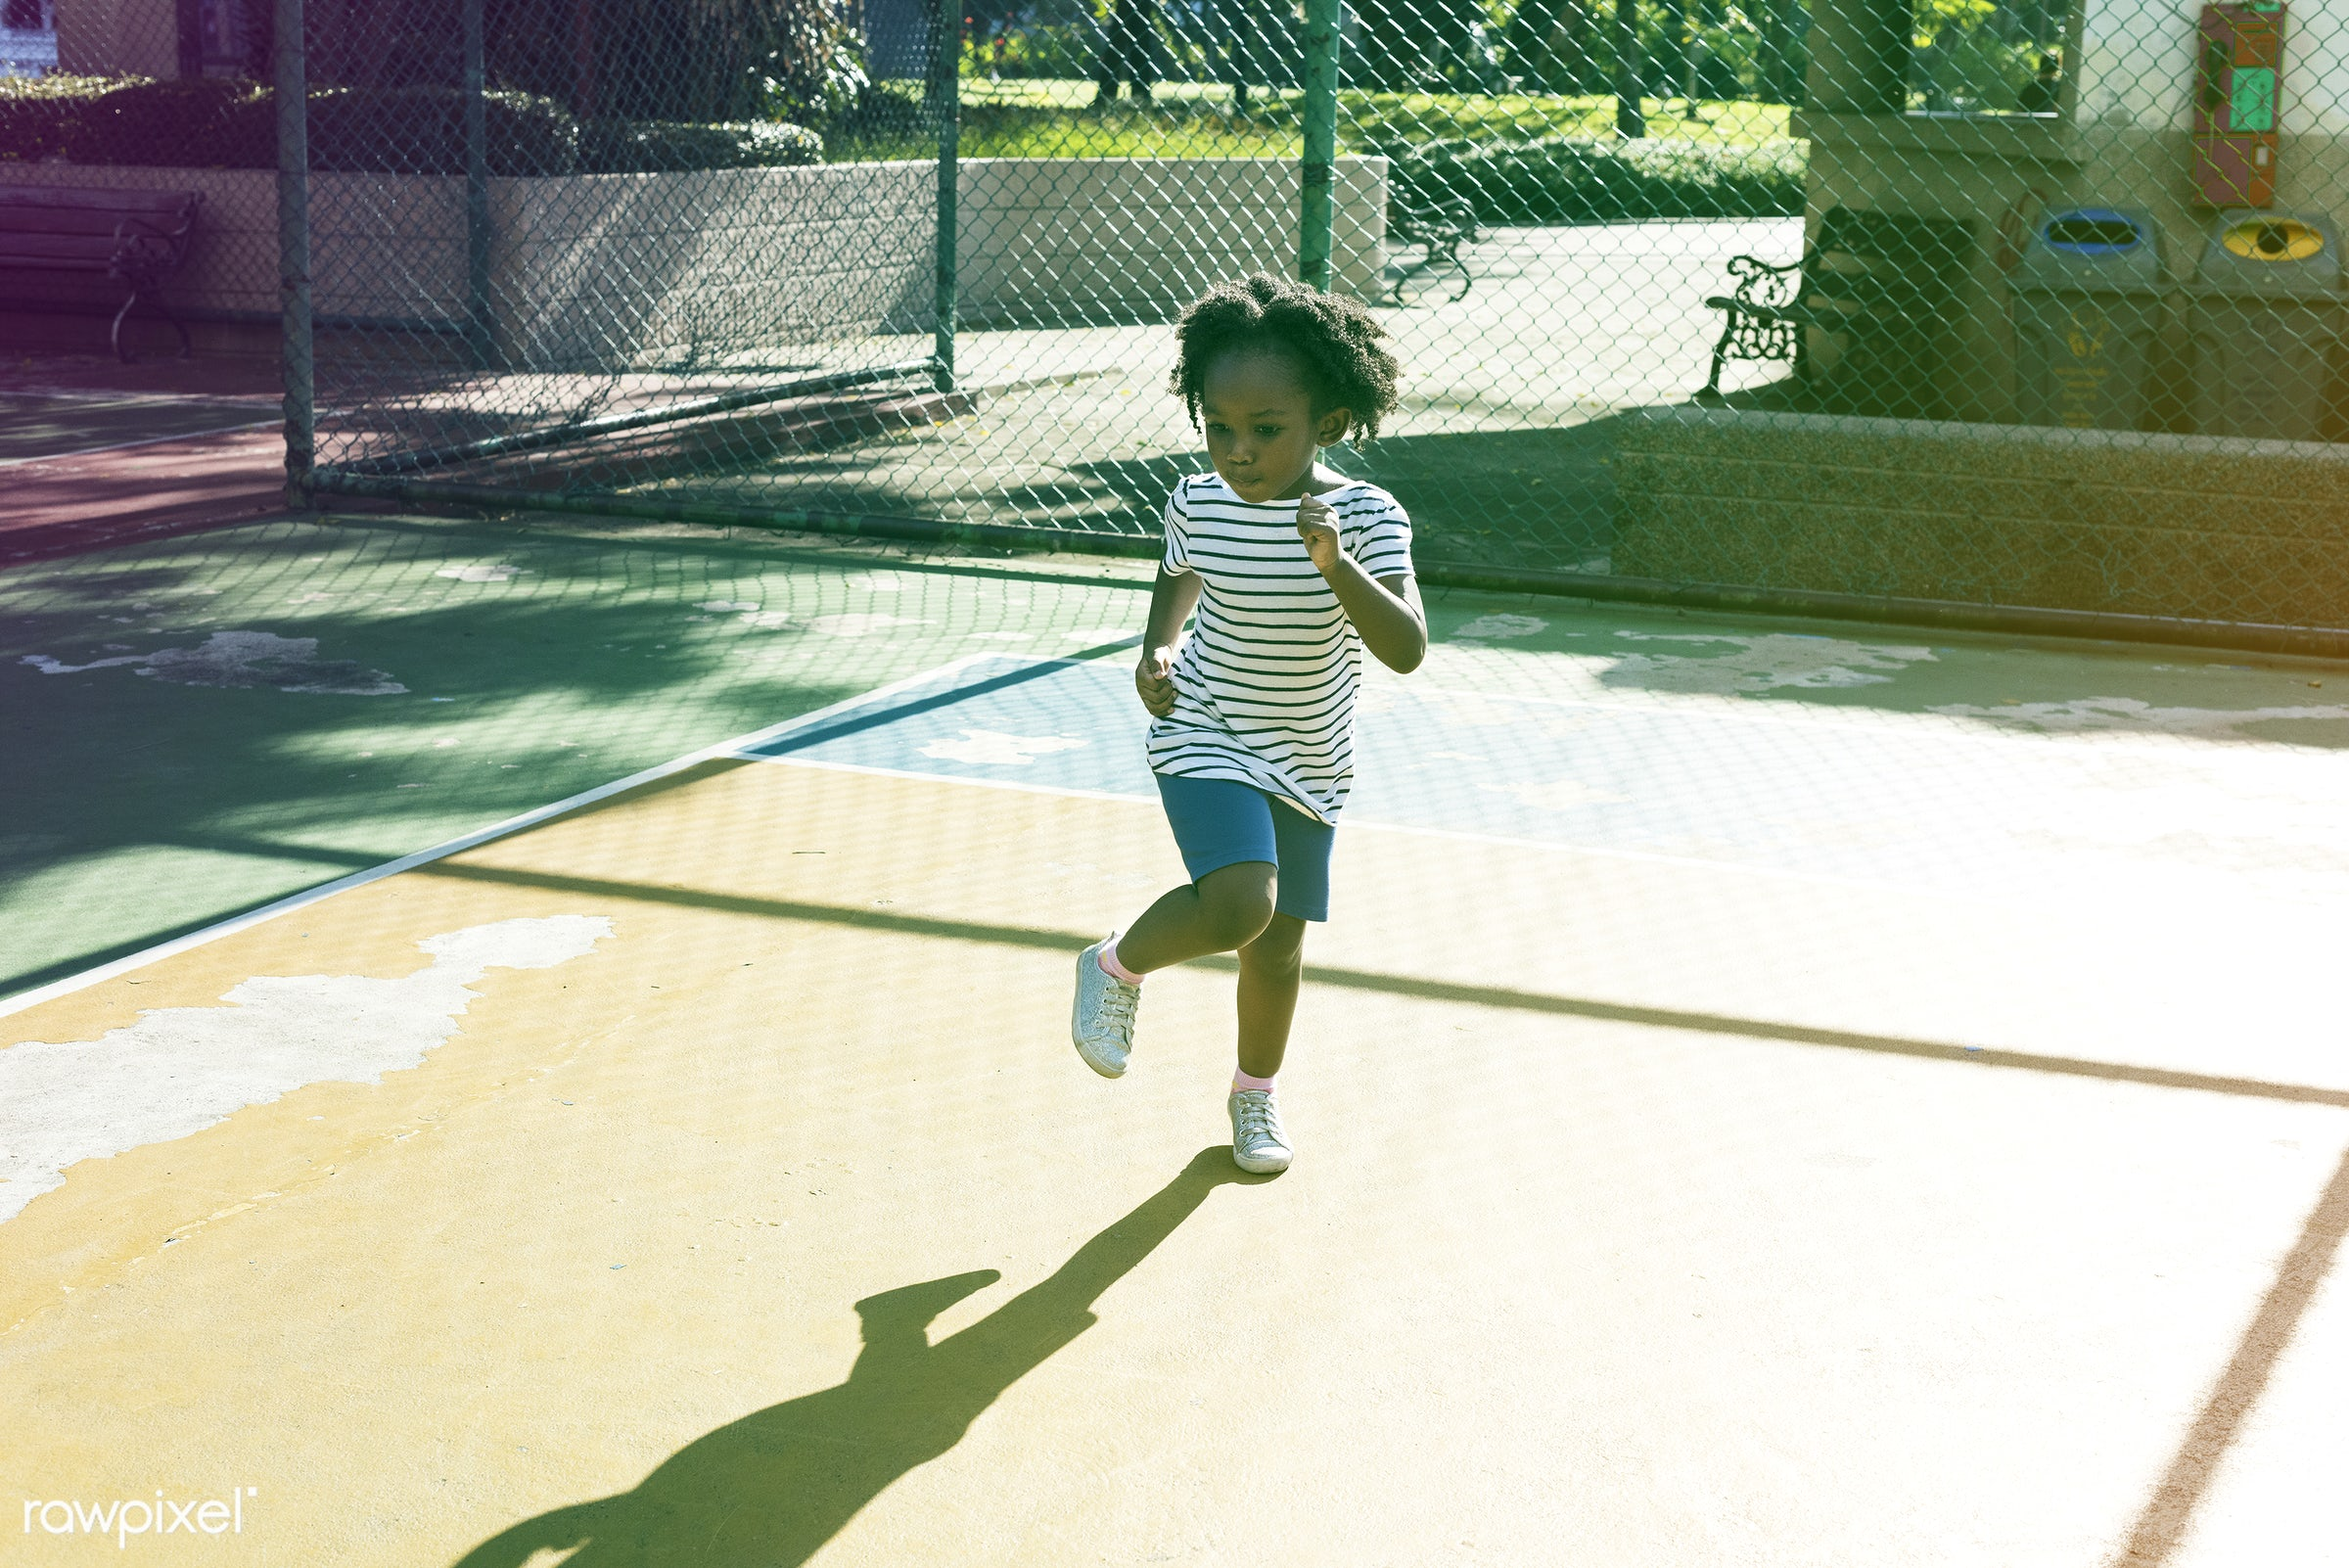 basketball, athletics, player, african, street, court, exercise, recreation, girl, arena, family, activity, athlete, ball,...